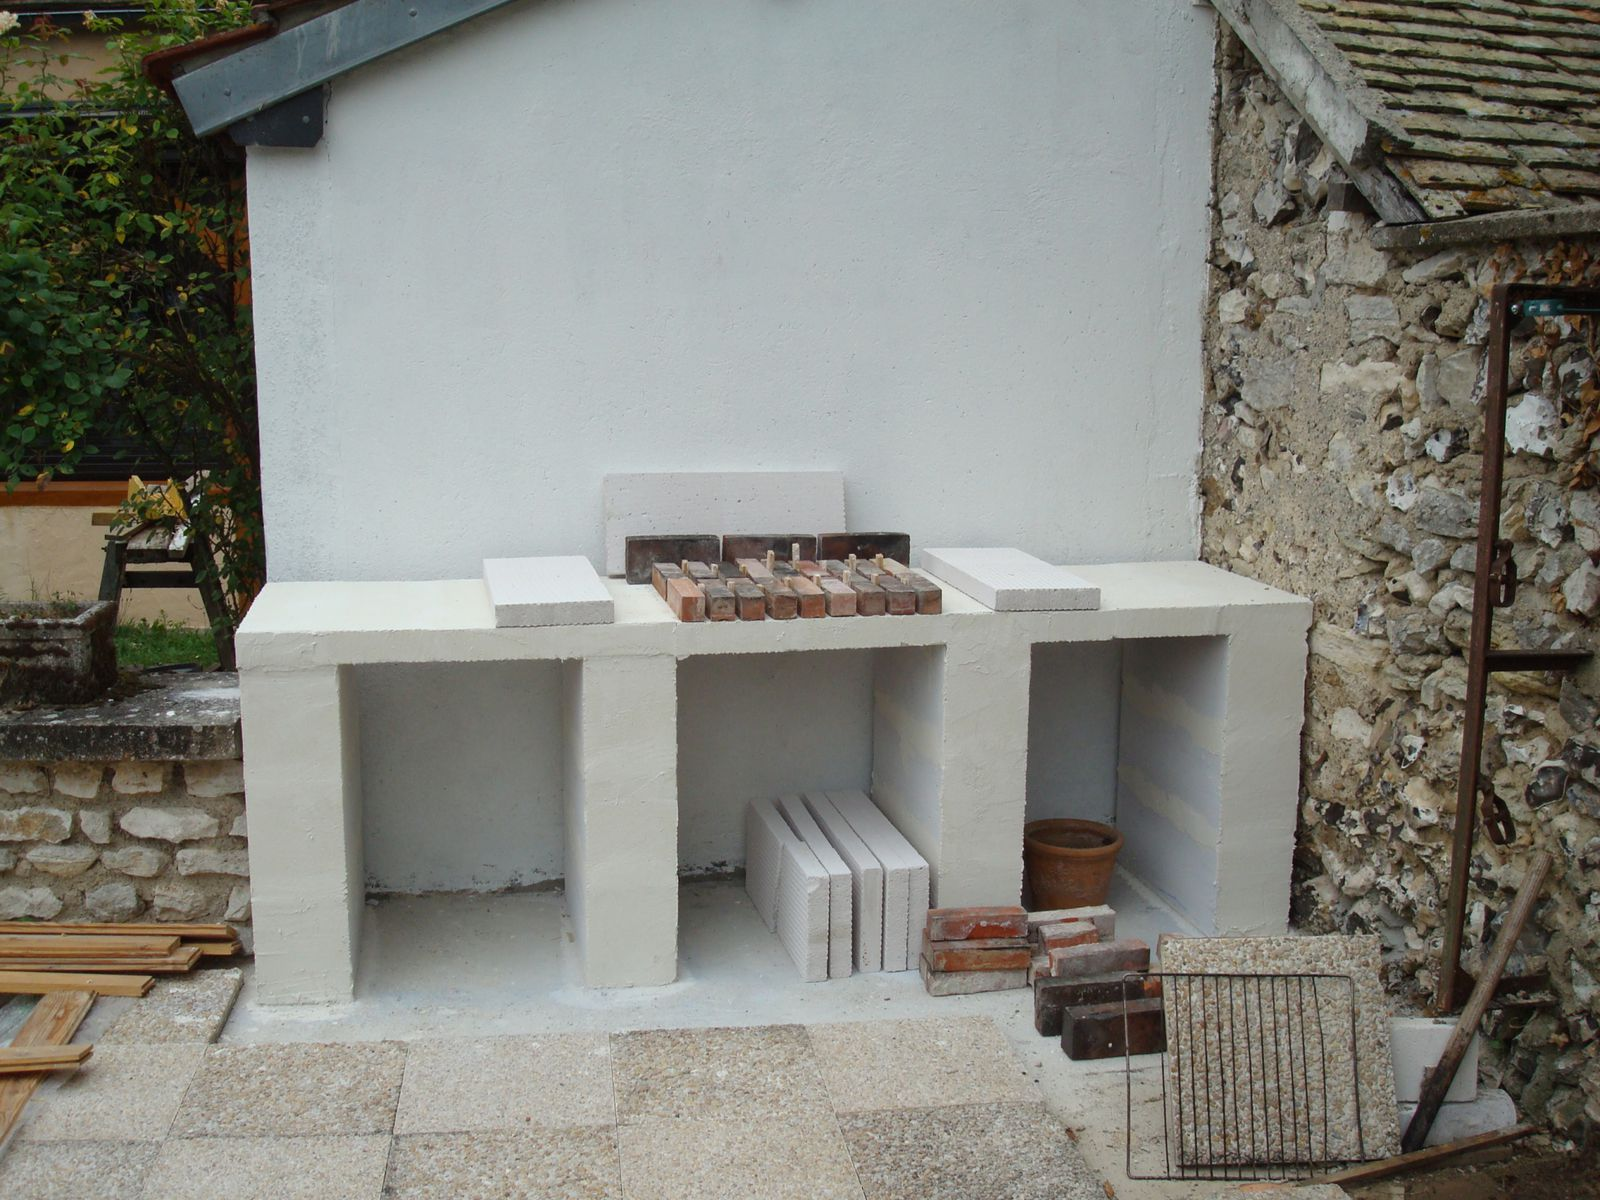 Construction Du0027un Barbecue Sur Mesure